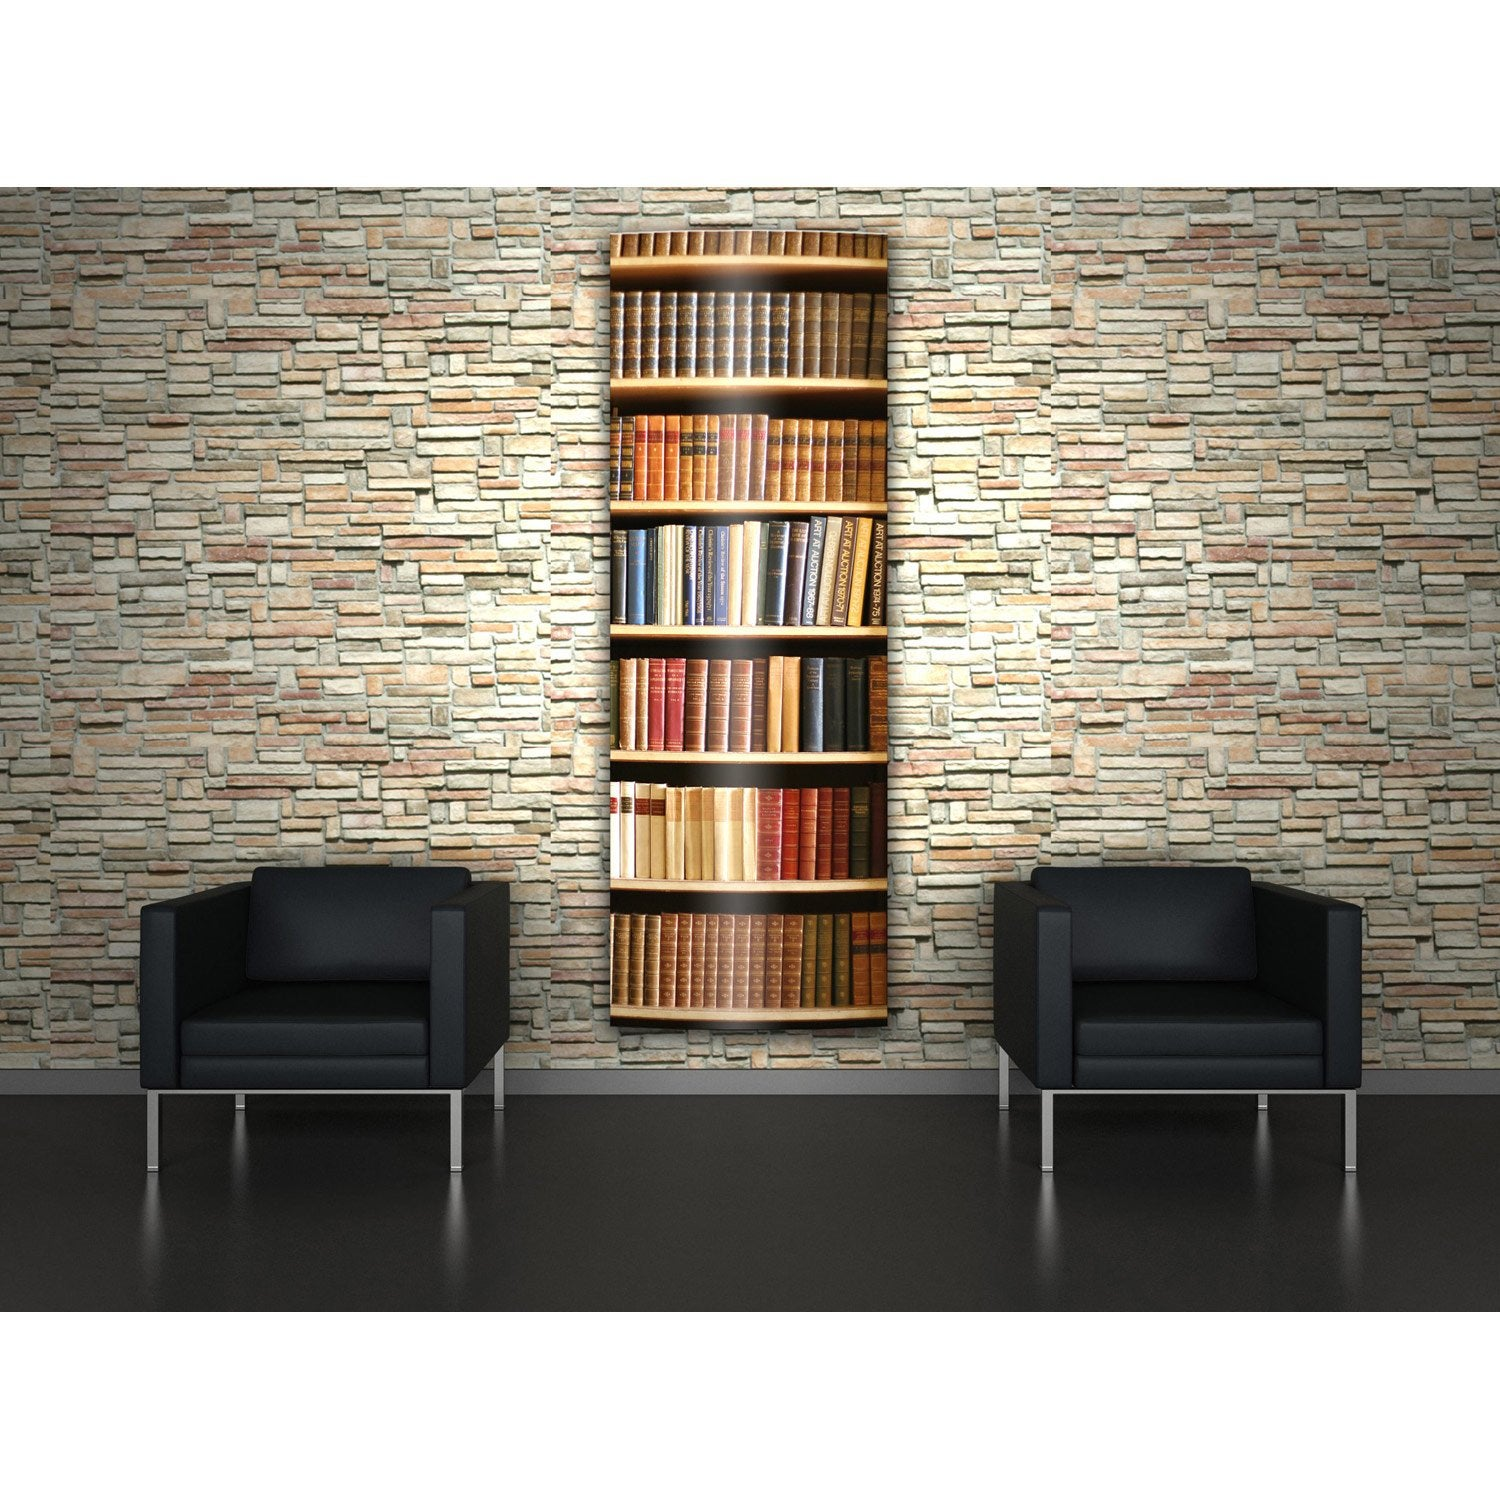 radiateur lectrique rayonnement arteo vertical biblioth que 1000w leroy merlin. Black Bedroom Furniture Sets. Home Design Ideas